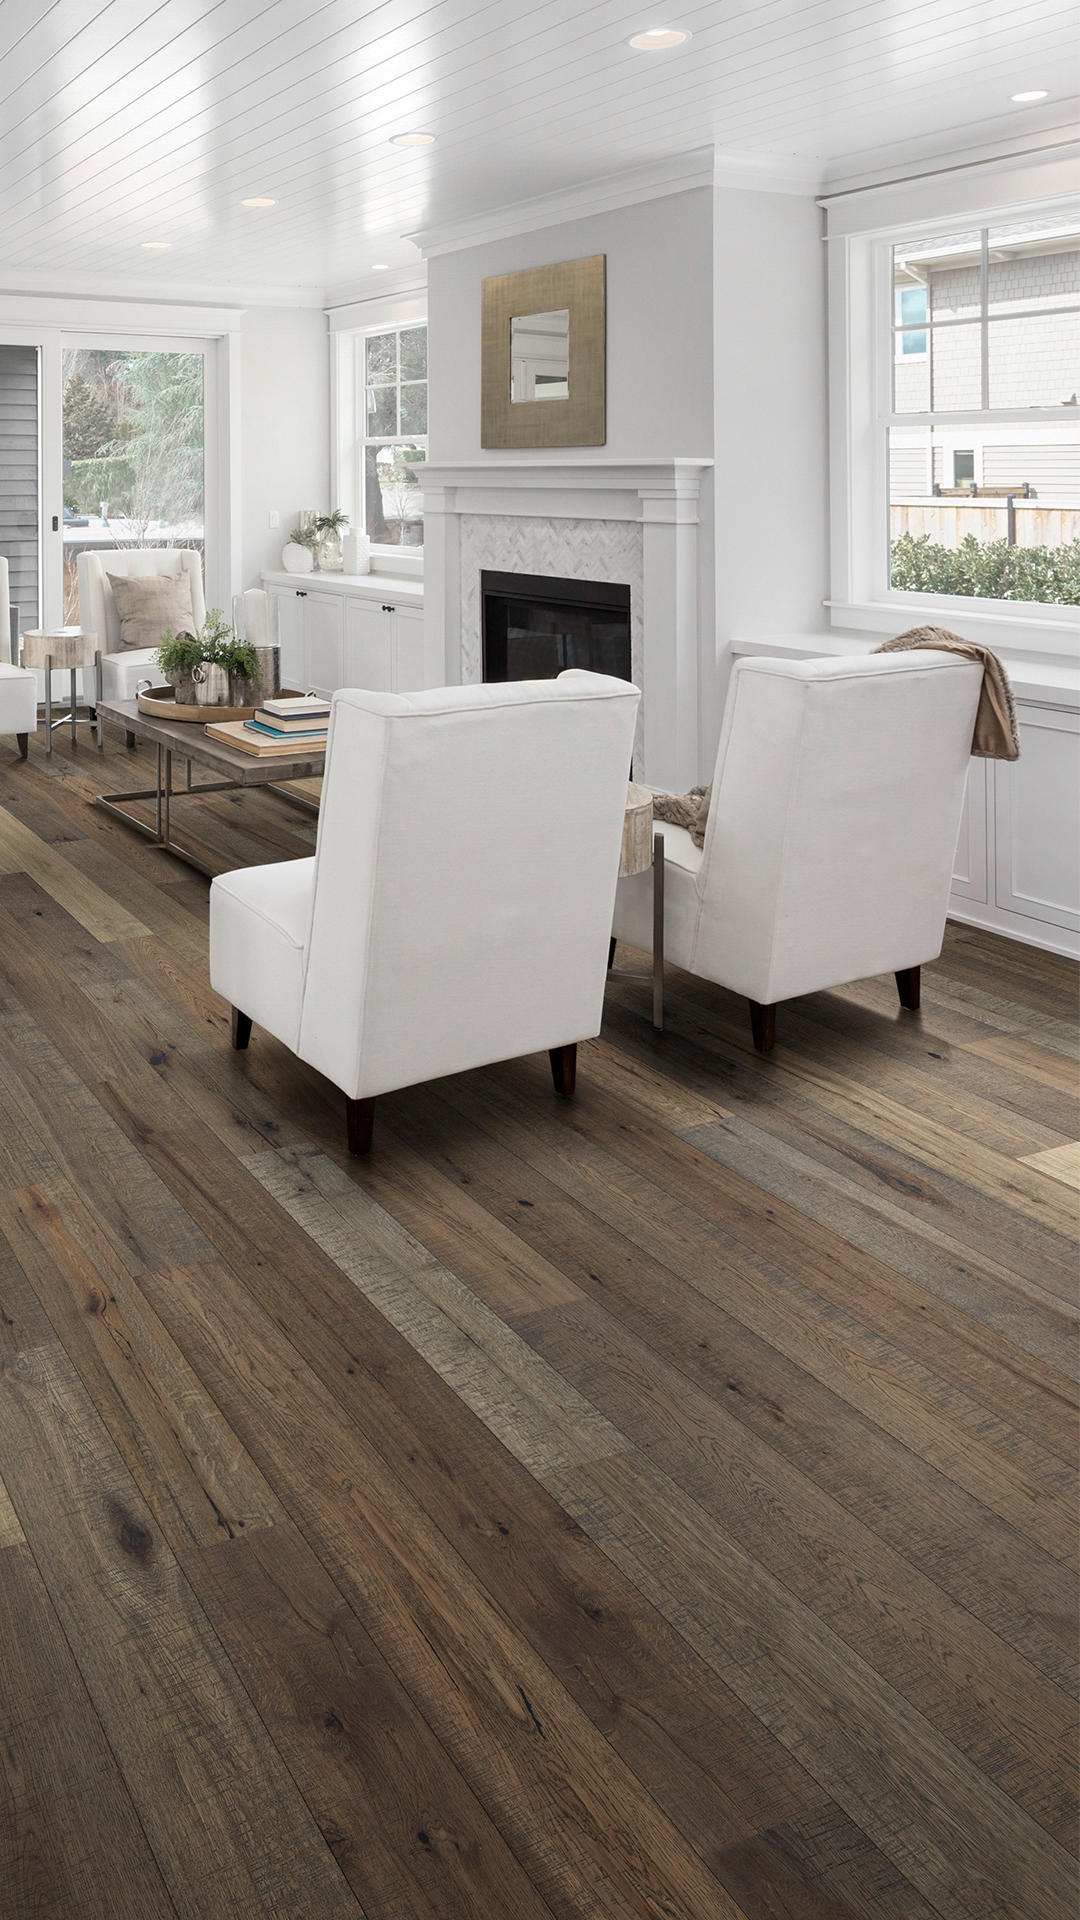 Lifecore Anton Ambiance Hardwood Floors Offer The Beauty Of A Dark Brown Wood Floor With Light Grey Hardwood Floors Grey Hardwood Floors Hardwood Floor Colors